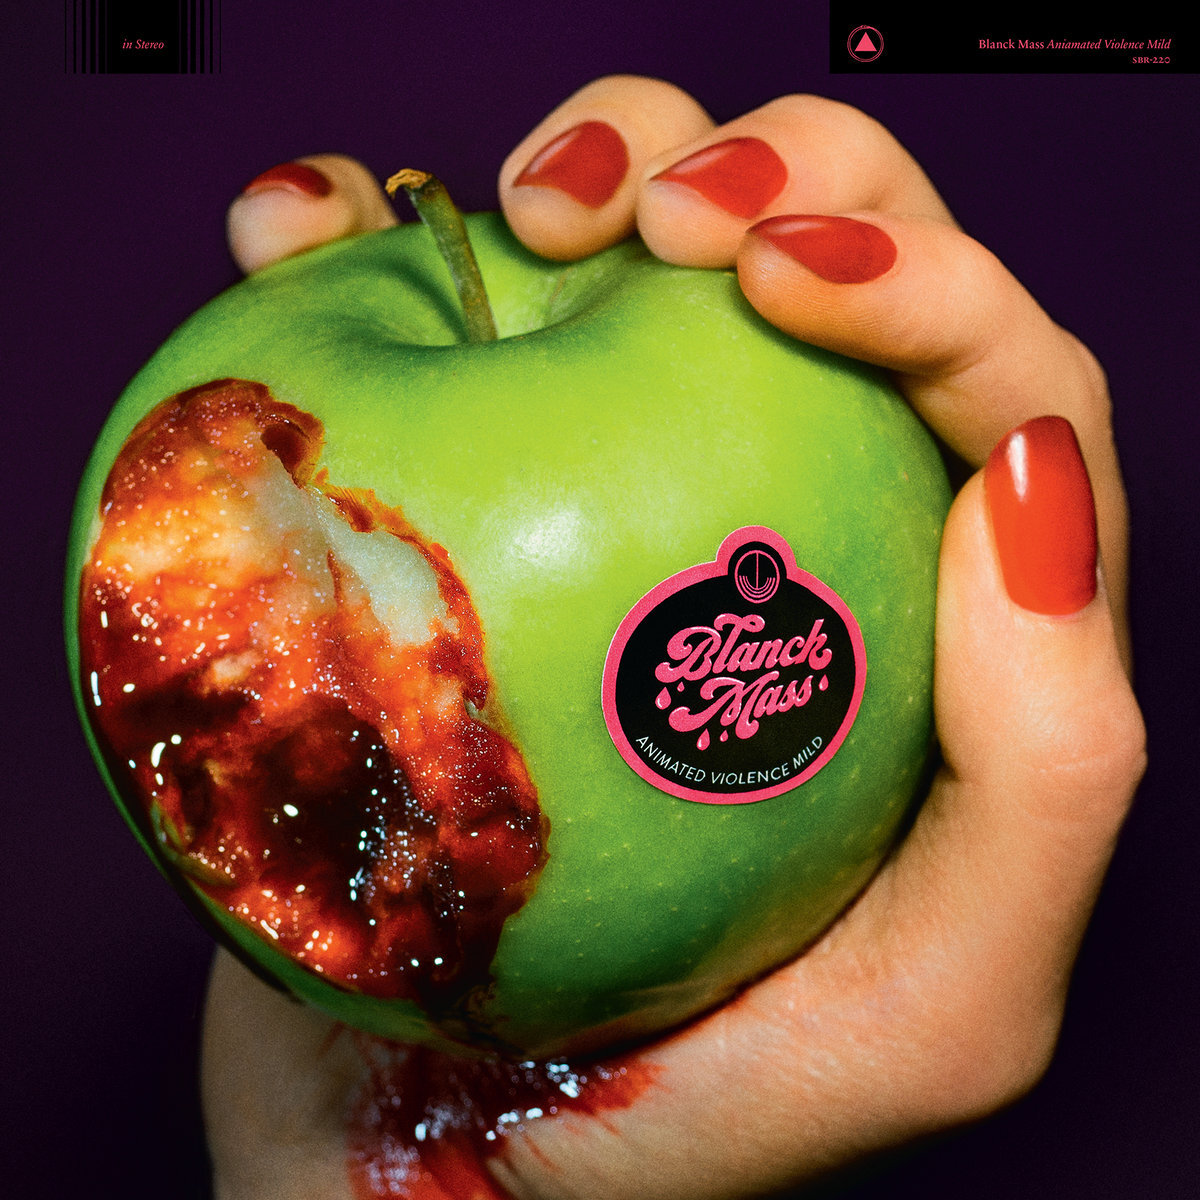 Blanck Mass - Animated Violence Mild (LP)